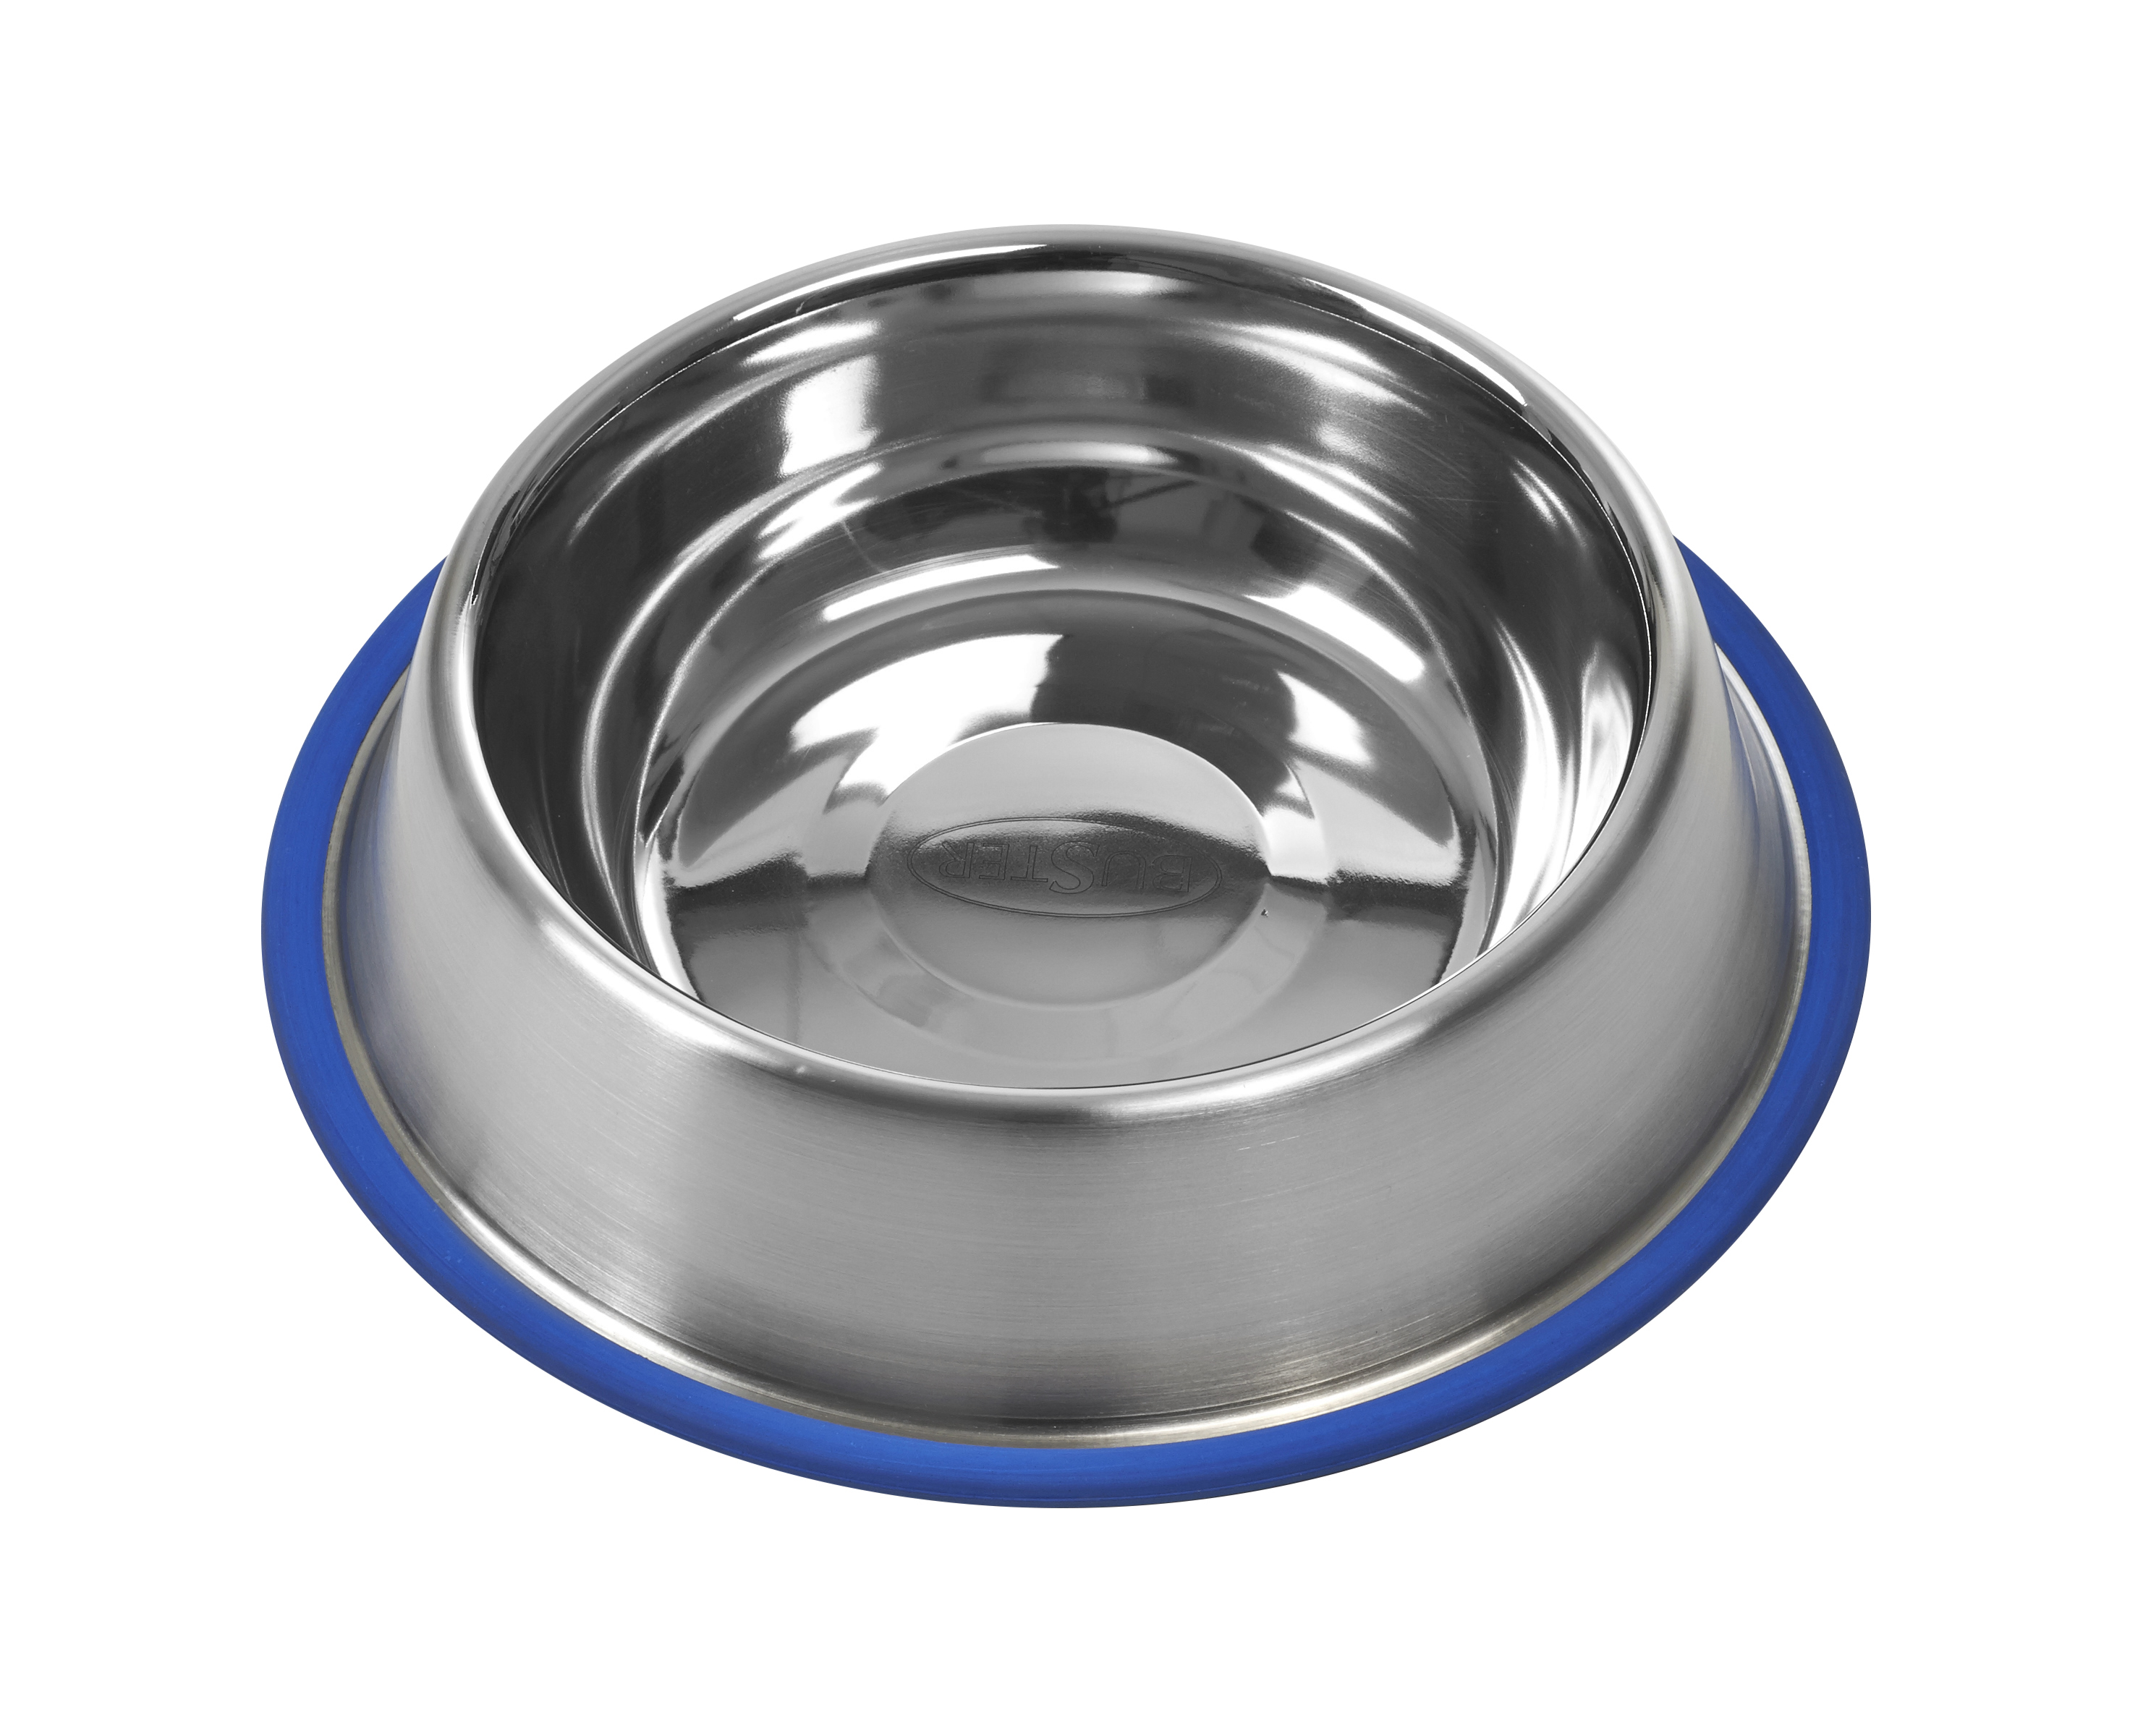 BUSTER Bowl, stainless steel, 0,85L, 23,0cm